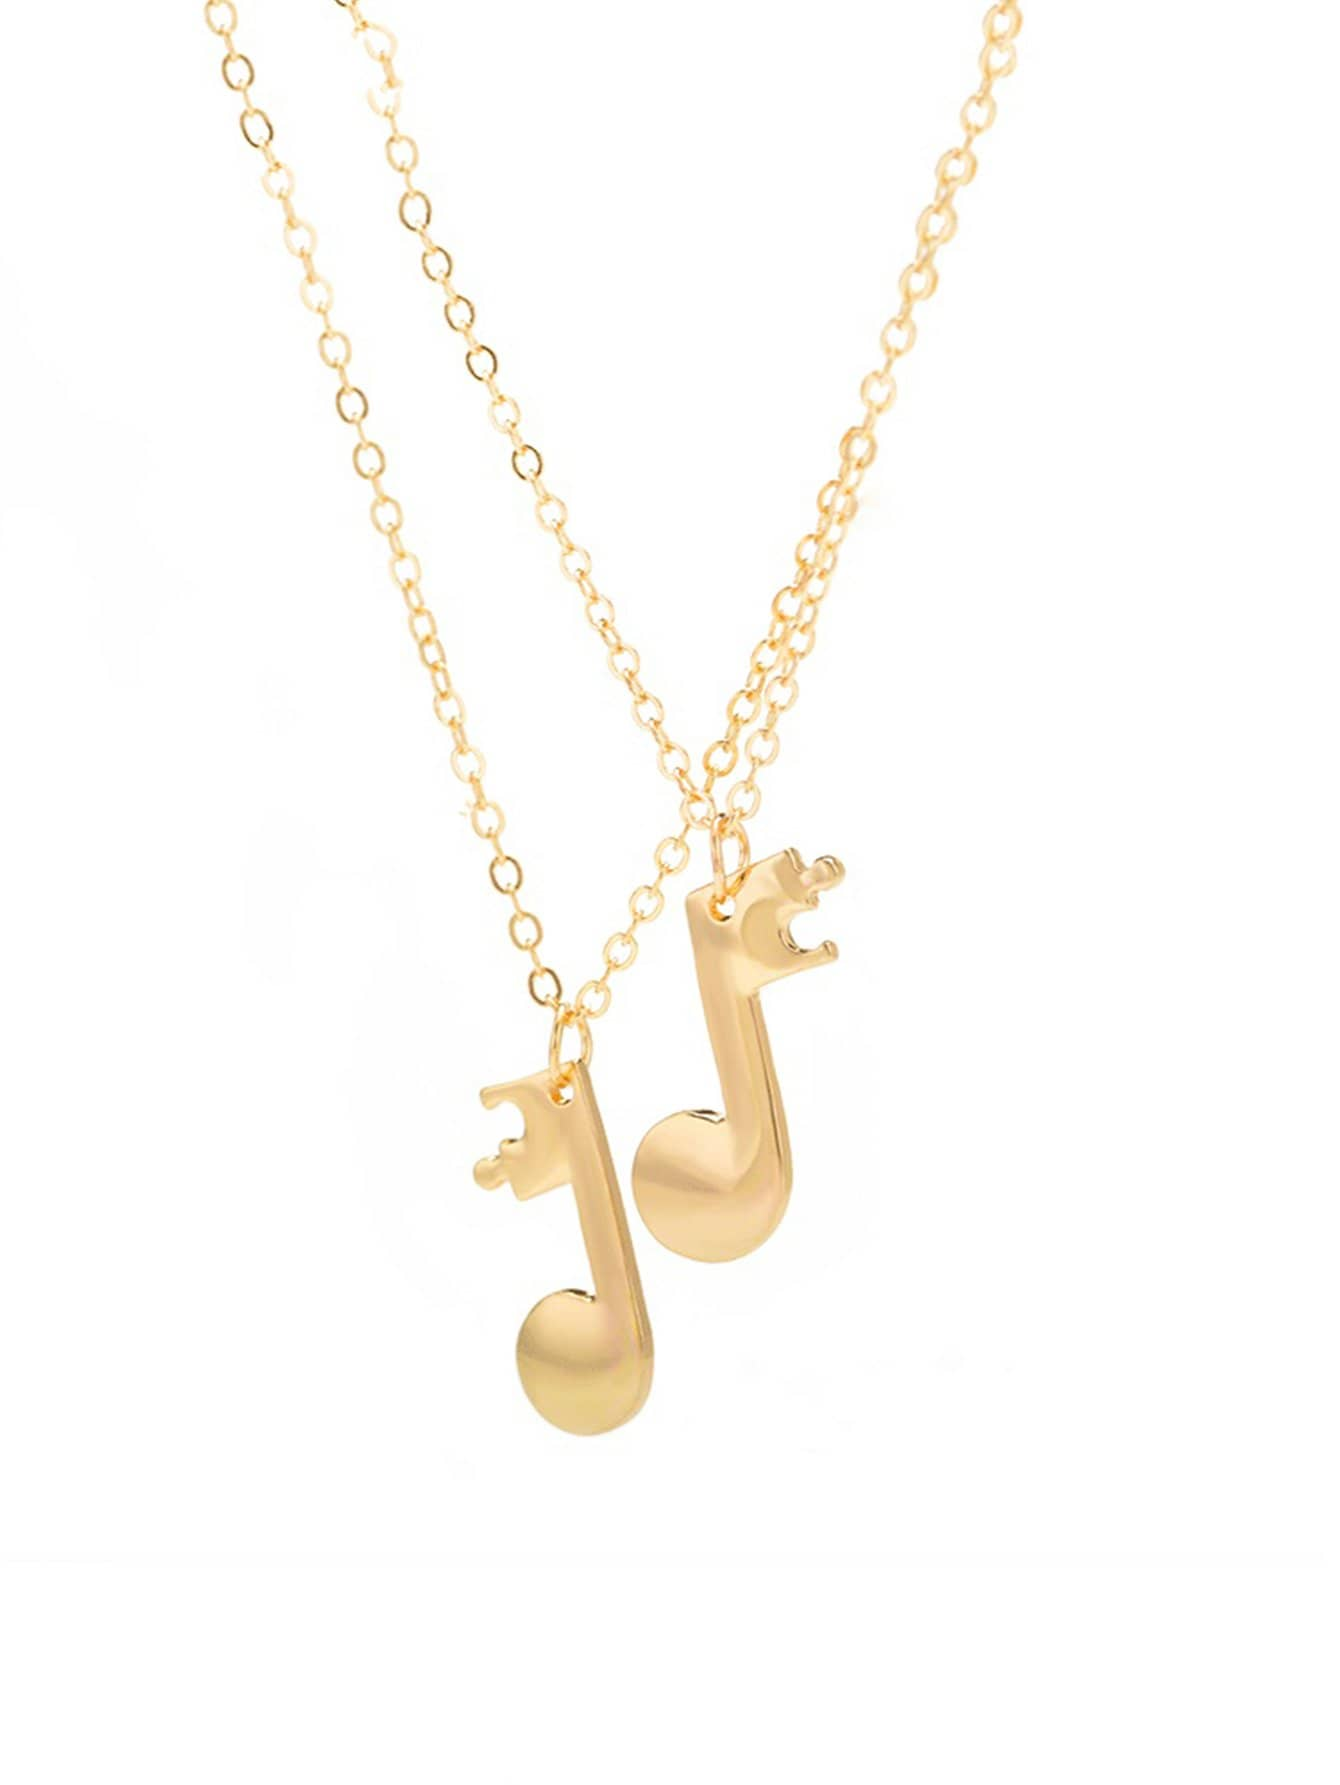 from note musical notes necklace tatty jewellery necklaces charm pendant devine